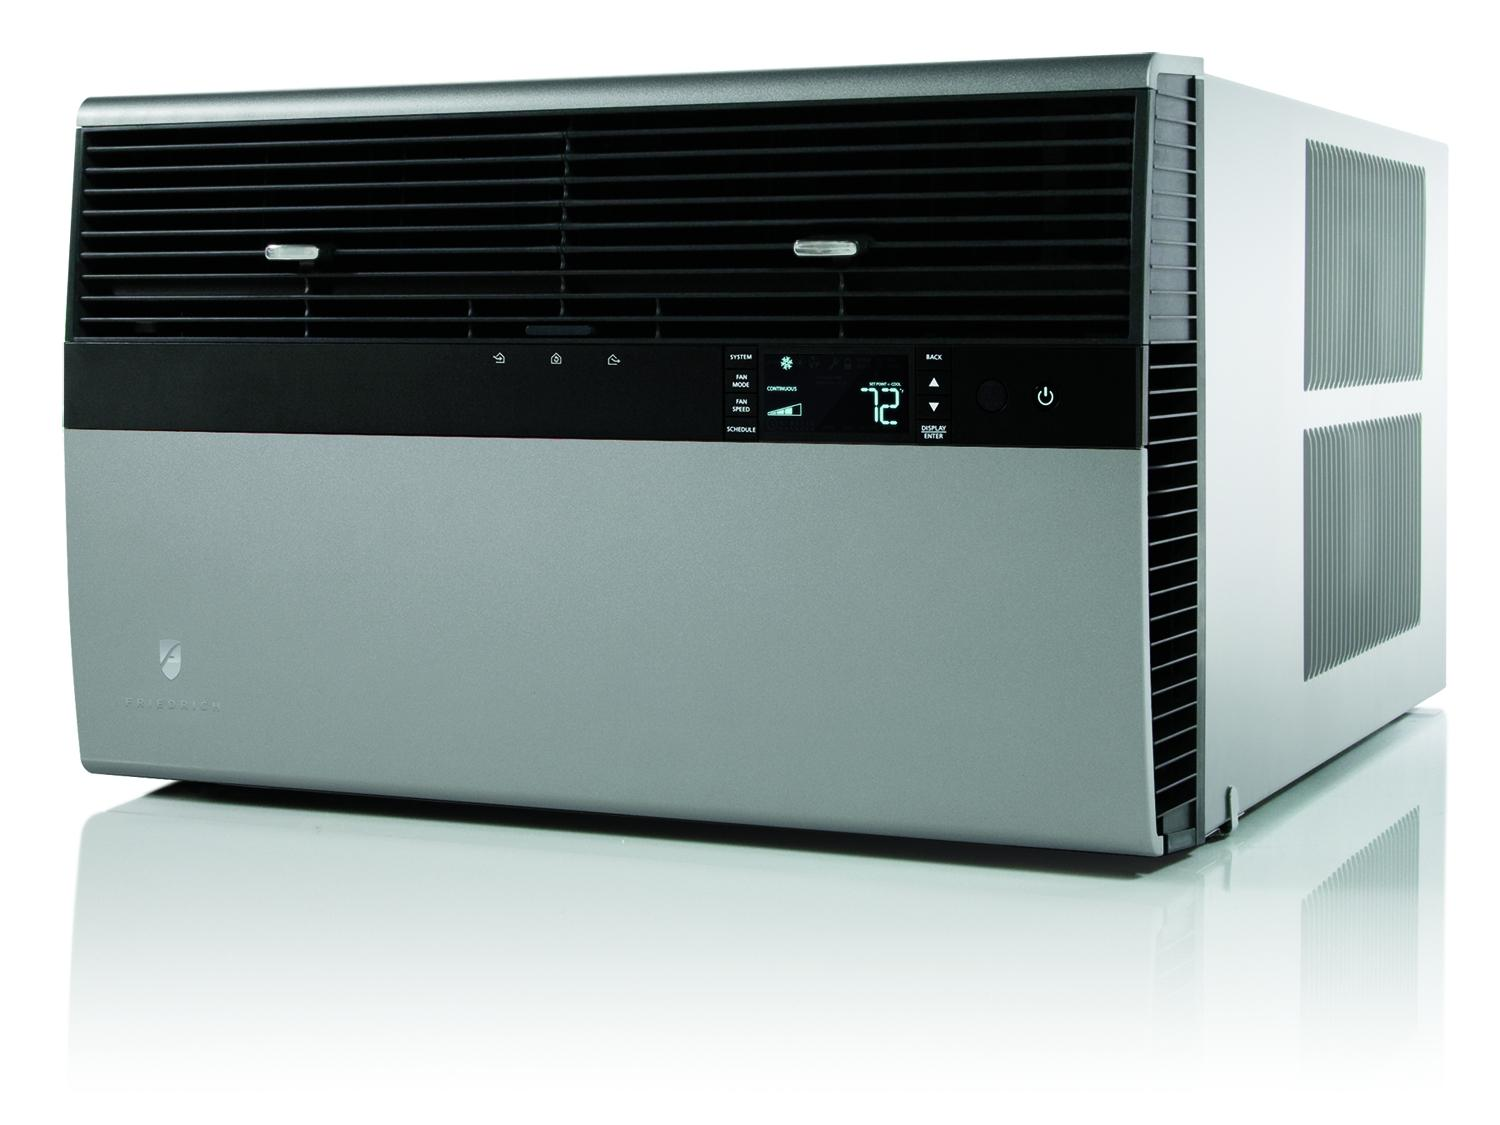 : FRIEDRICH Model: SS12N10 Style: 12 000 BTU Room Air Conditioner #56756F